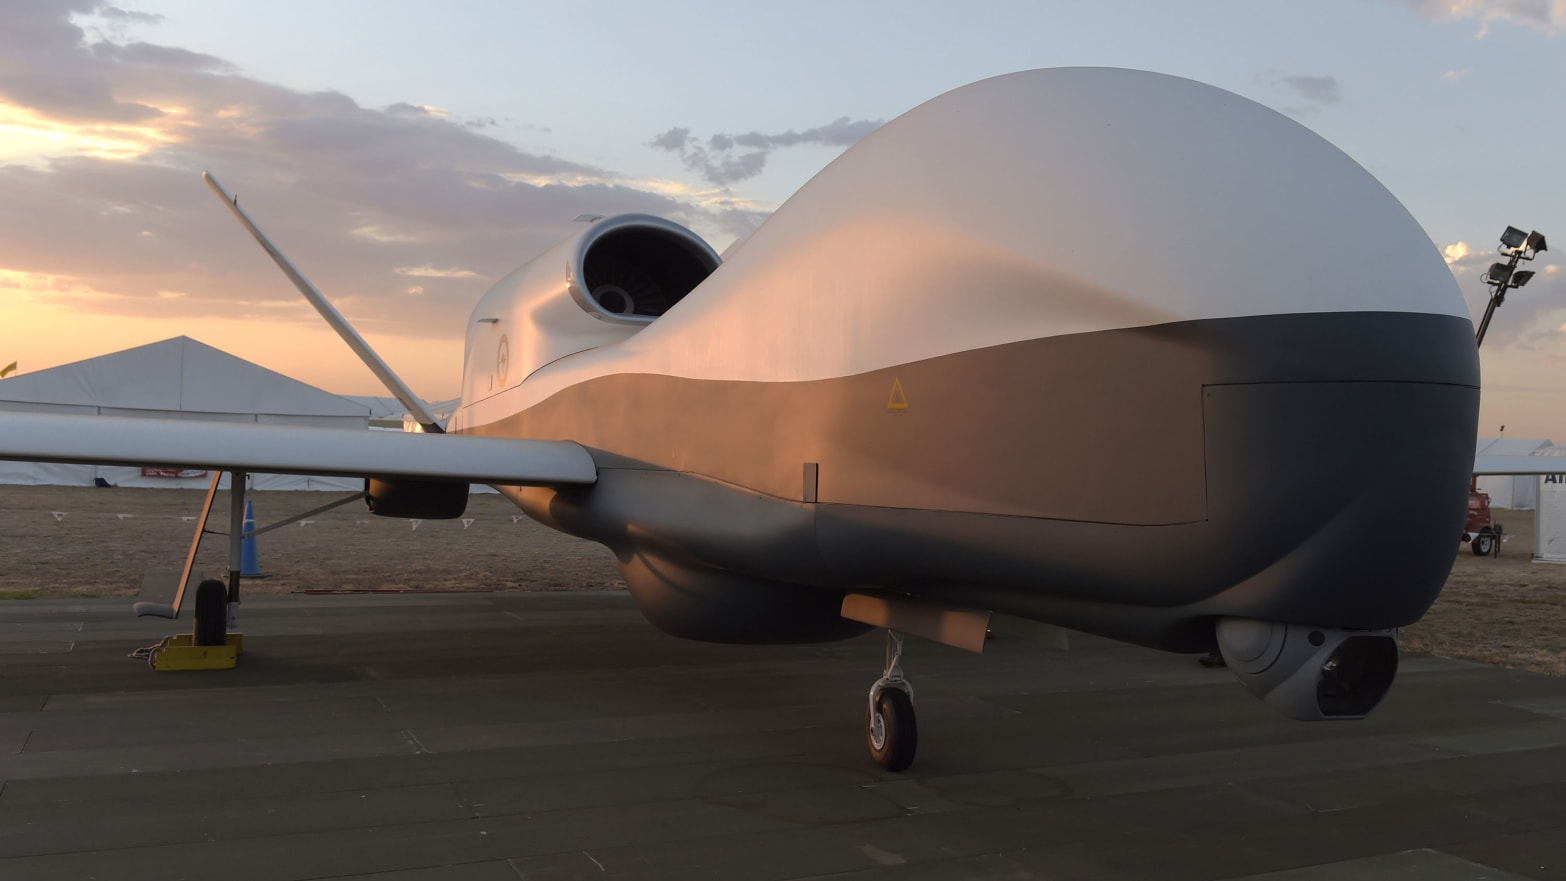 BAMS-D Drone Shot Down by Iran Is a $200 Million Prototype